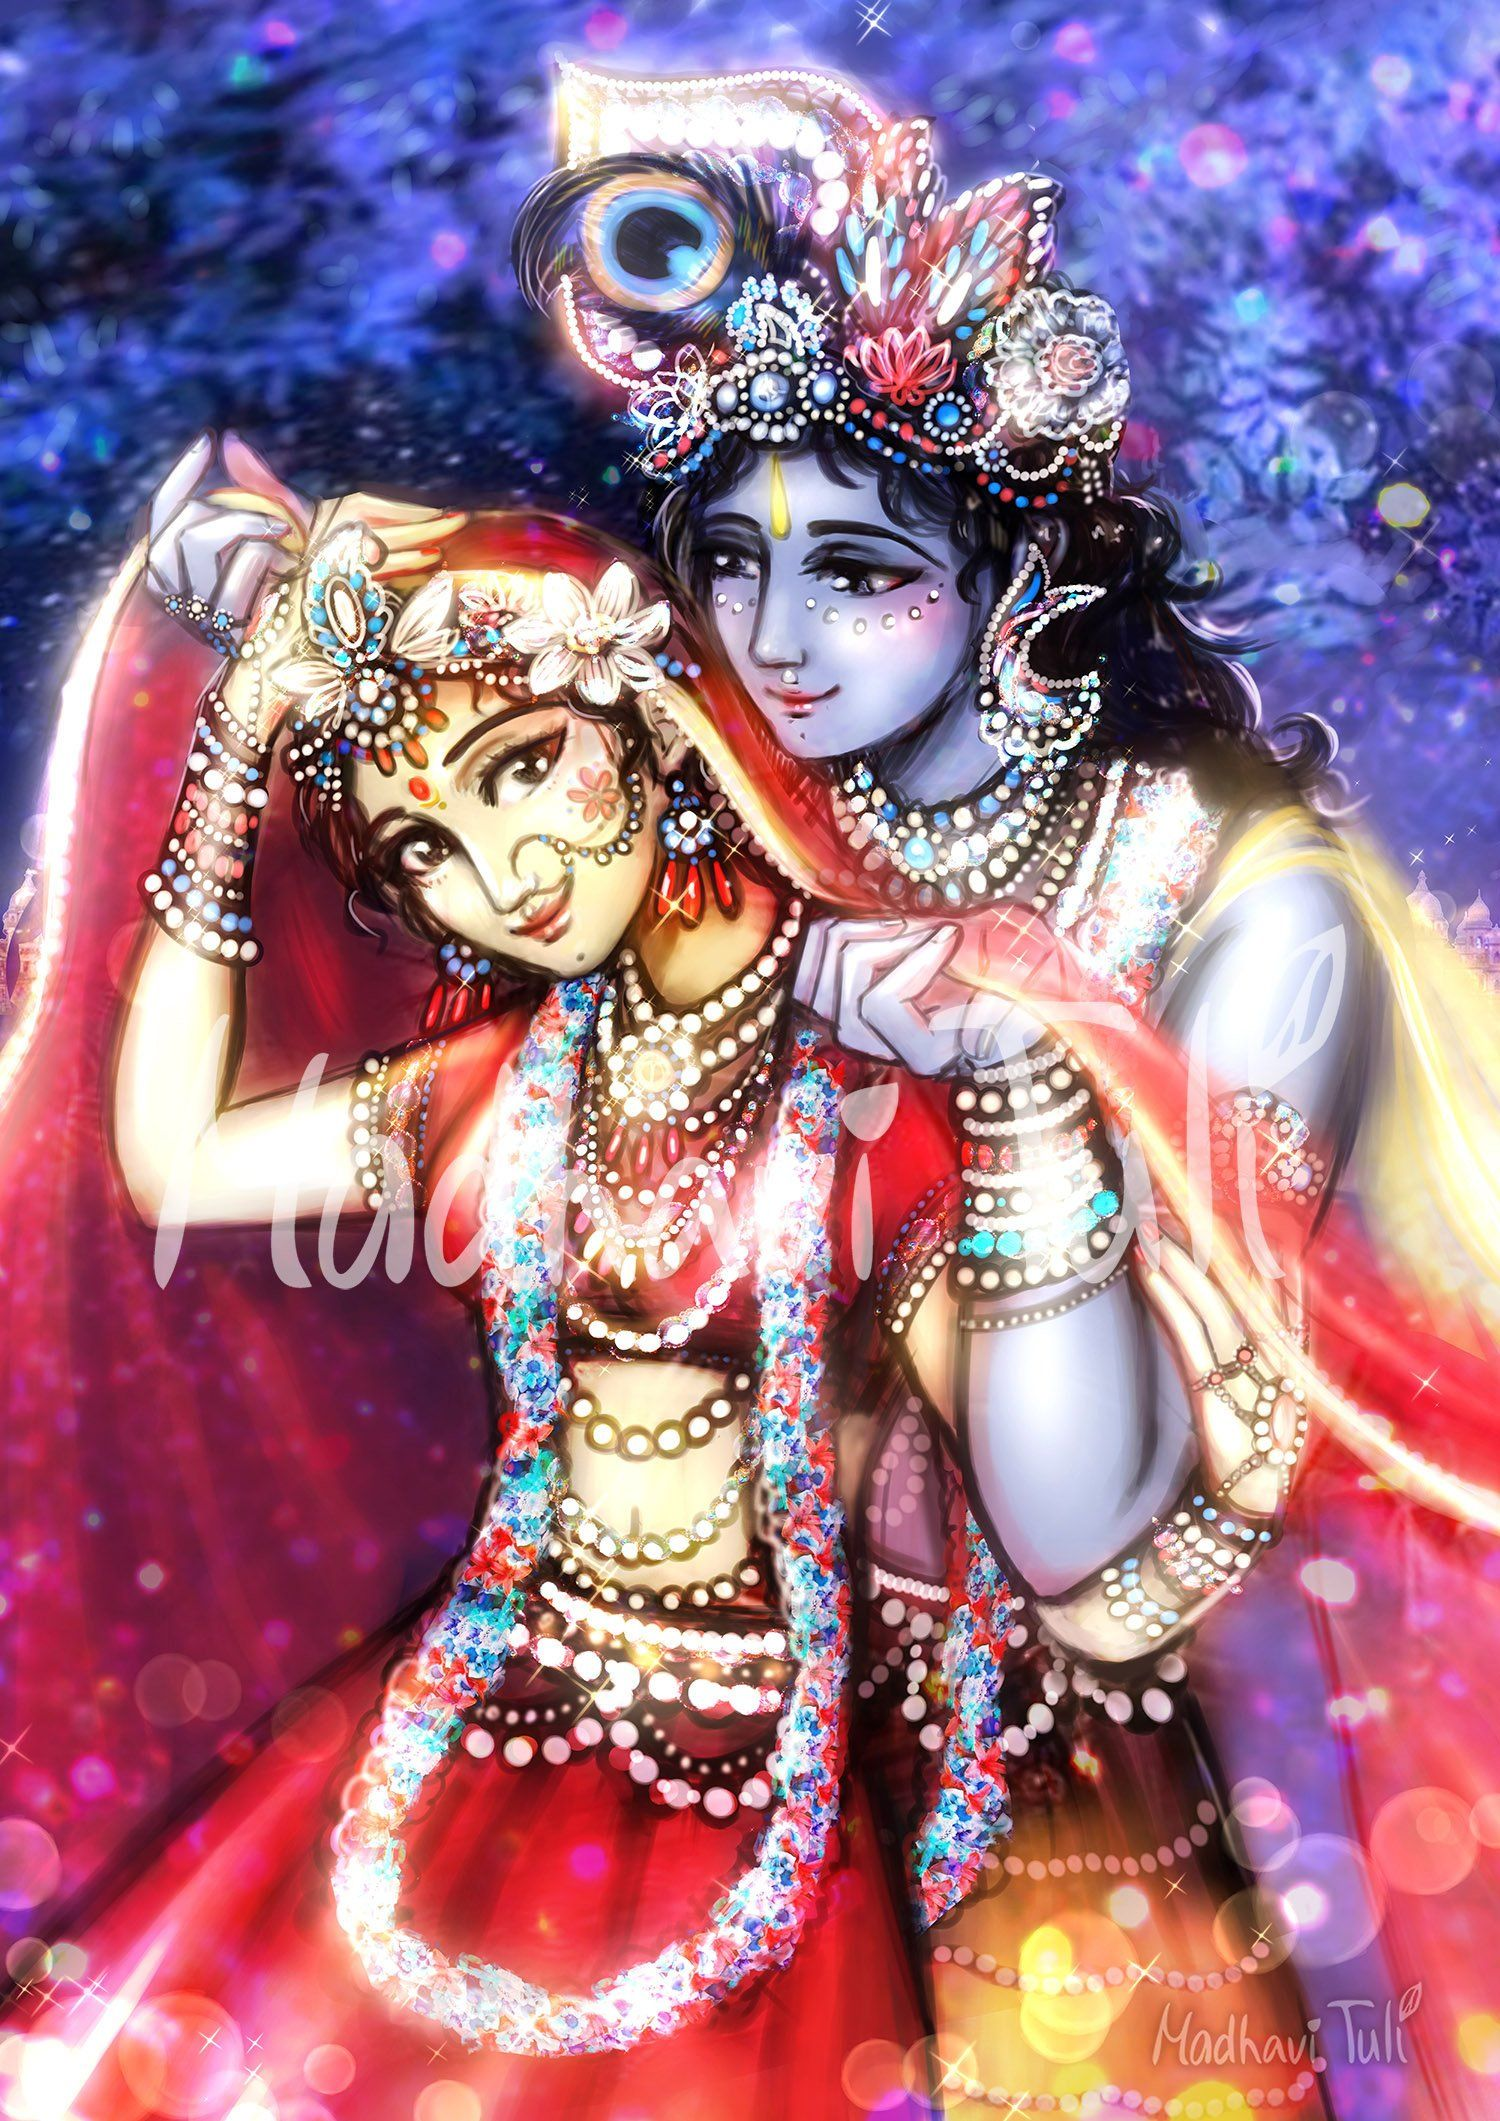 Hd File Shri Krishna With Shri Radha 4k High Quality Wallpaper Etsy Radha Krishna Art Krishna Wallpaper Krishna Art